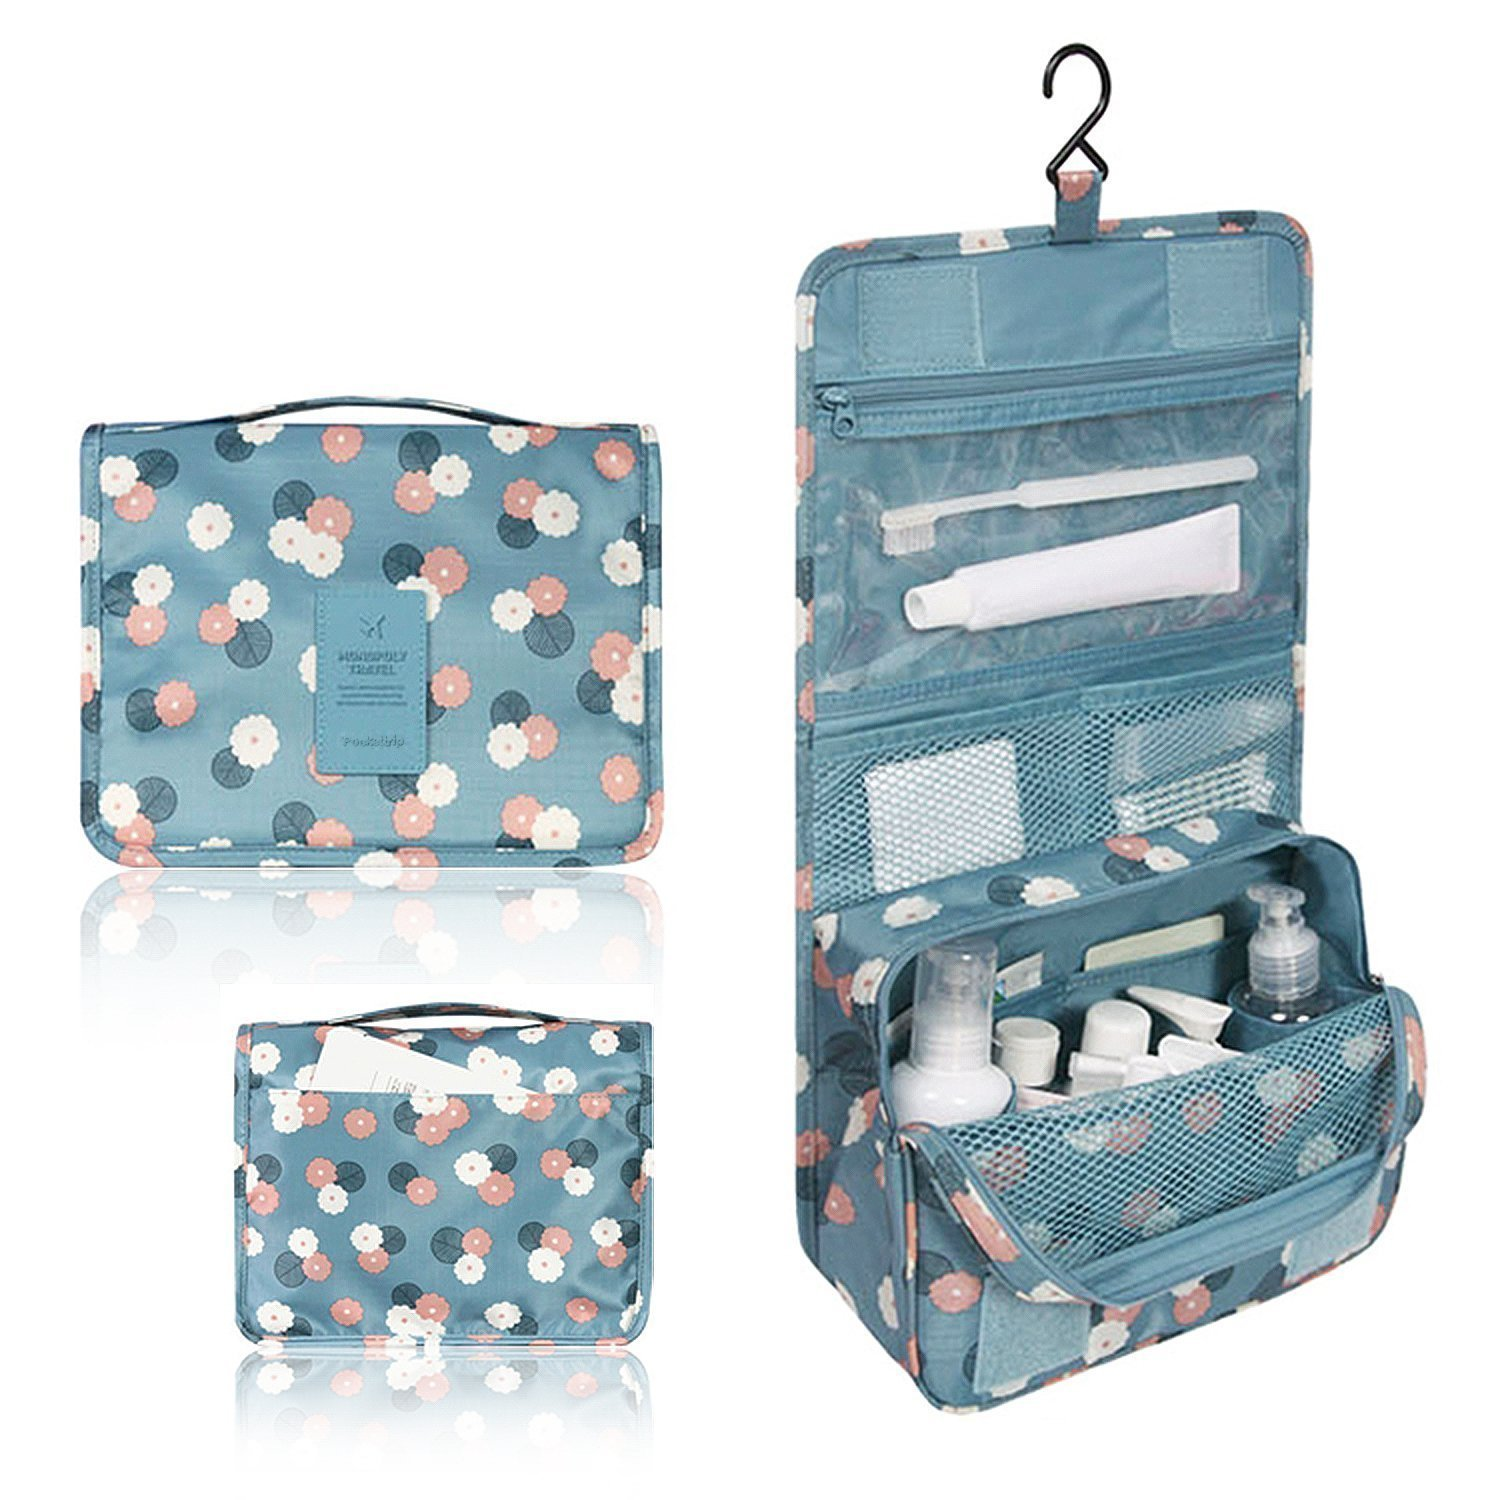 Mr Pro Waterproof Travel Kit Organizer Bathroom Storage. Toiletry Bags   Amazon com